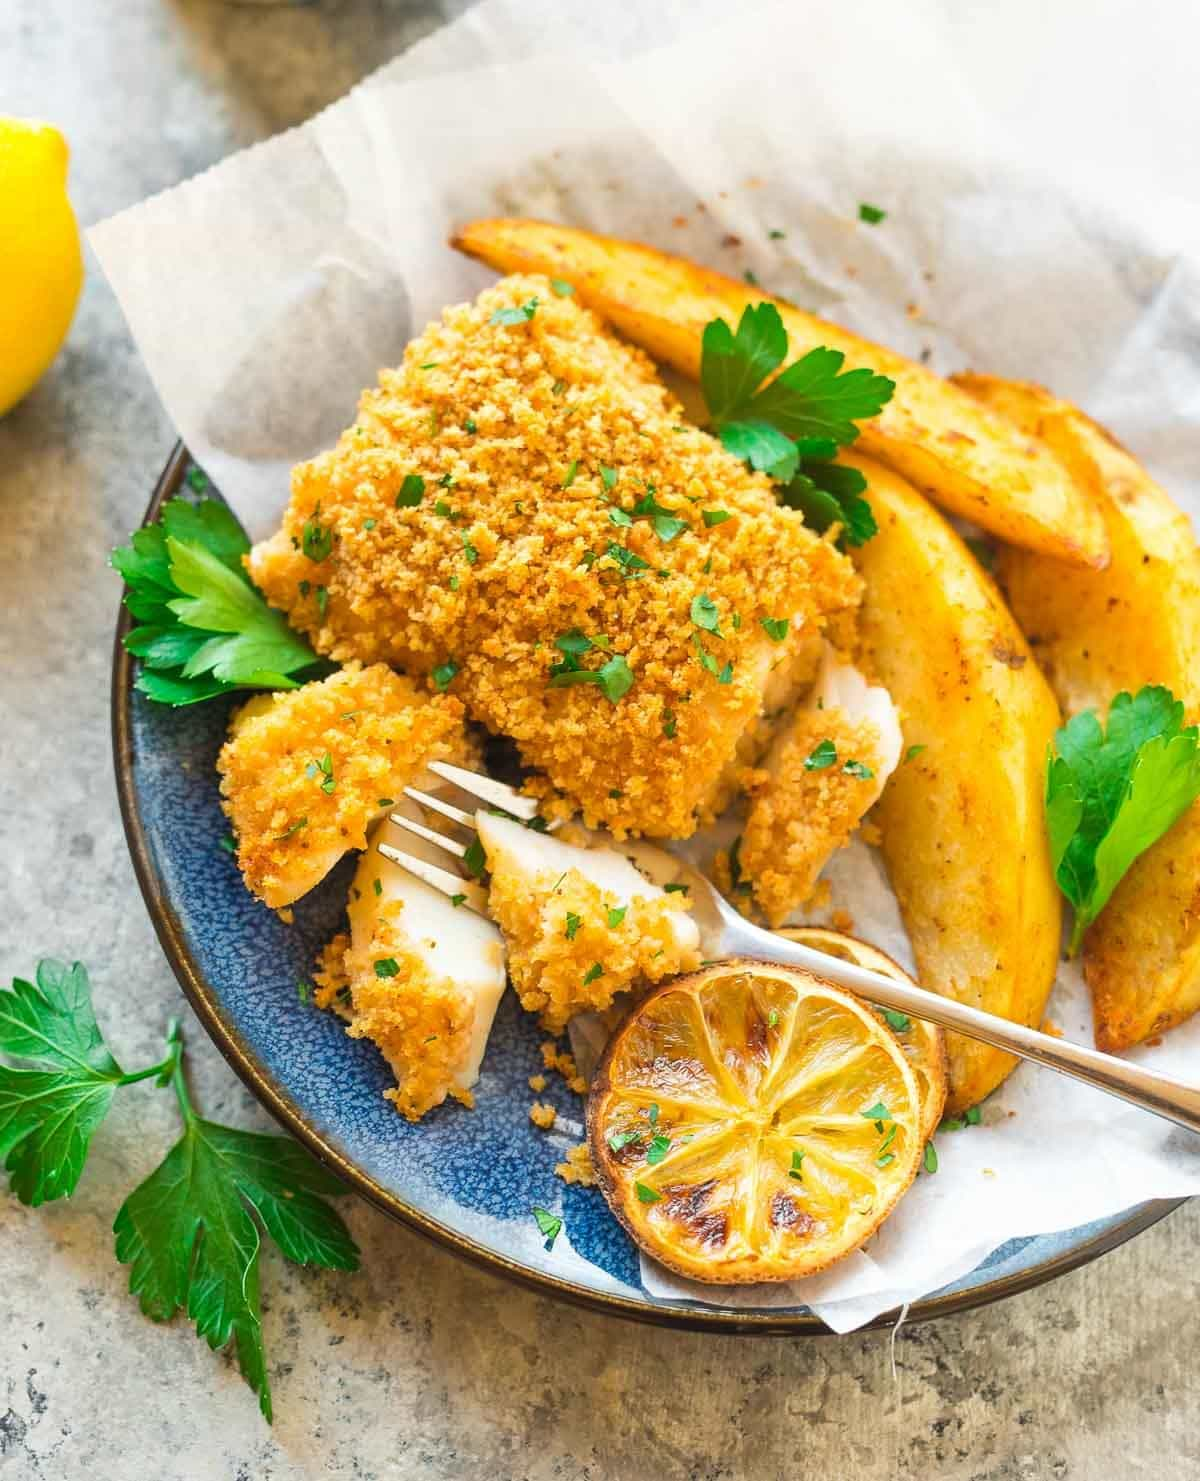 Healthy Oven Fried Fish and Chips. A baked fish and chips recipe that's crispy on the outside, tender and flaky on the inside and a family favorite. Quick and easy dinner recipe! Recipe at wellplated.com | @wellplated